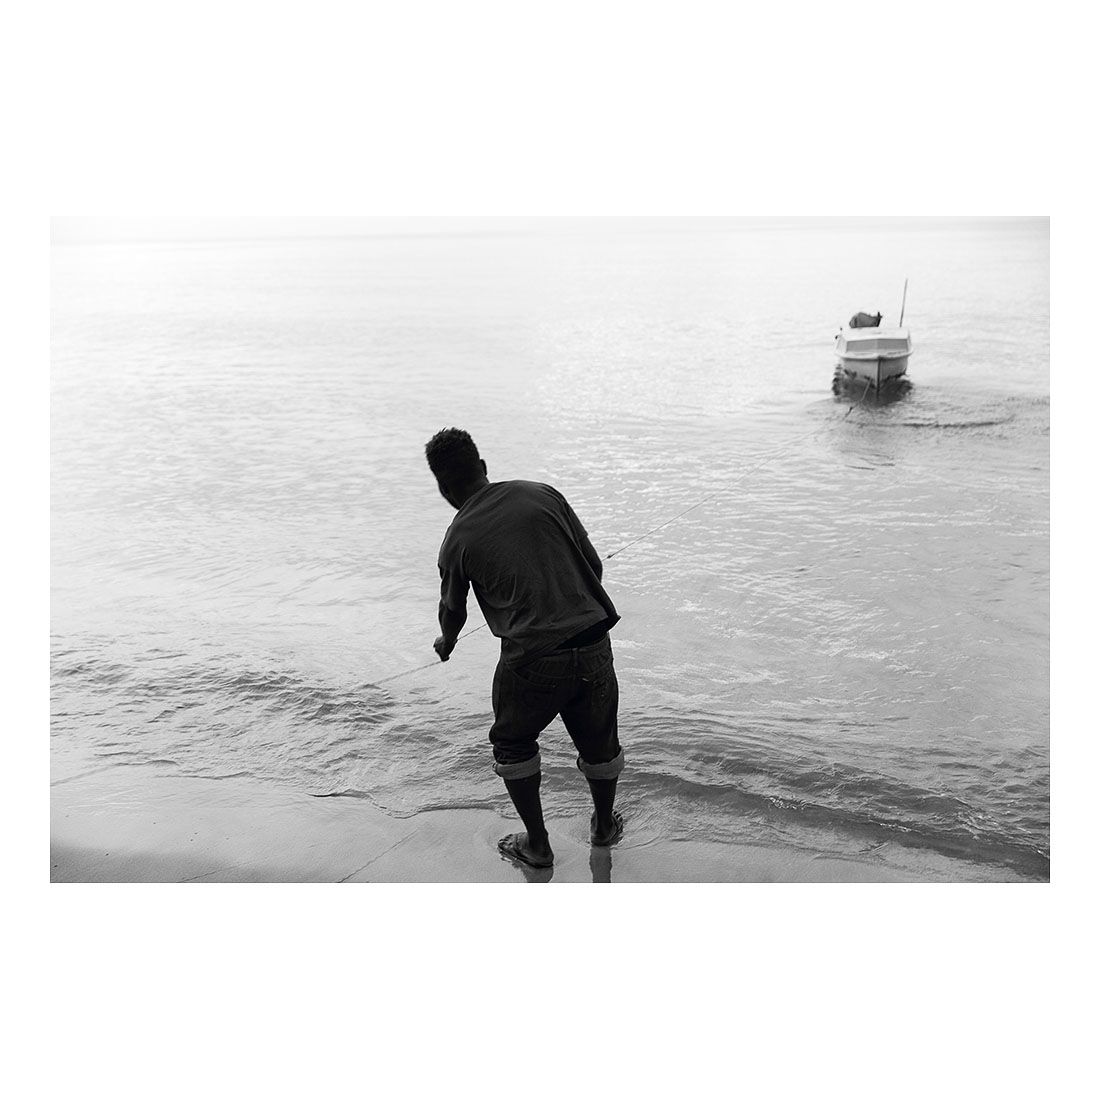 #5 Samate, Guadalcanal, Solomon Islands  (2016).  Archival pigment print on Ilford paper. Exhibition print 24cm x 36cm. Different sizes available.